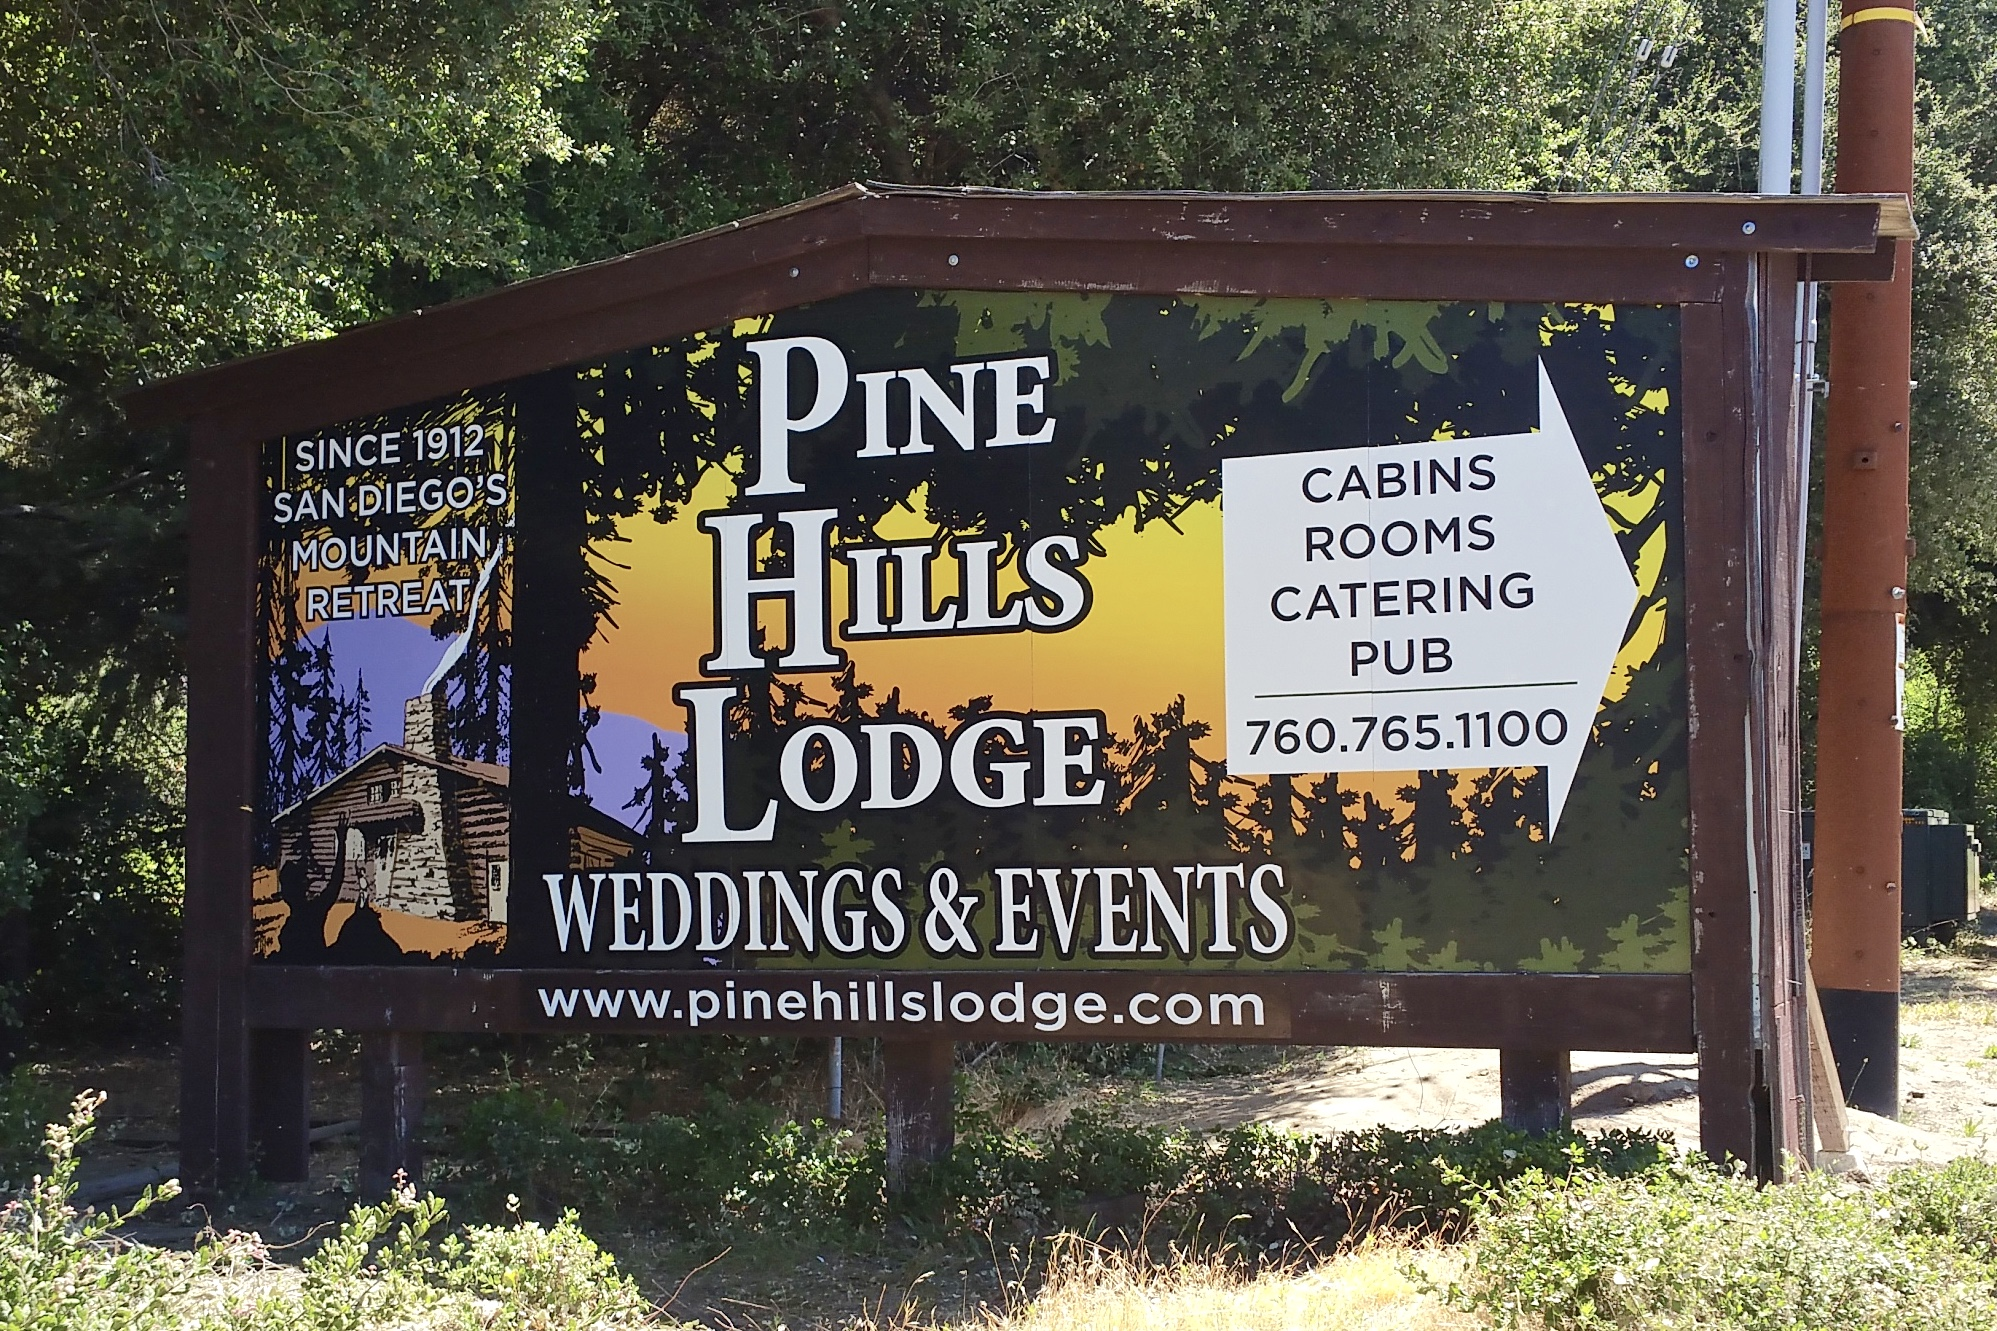 Pine Hills Lodge billboard monument sign